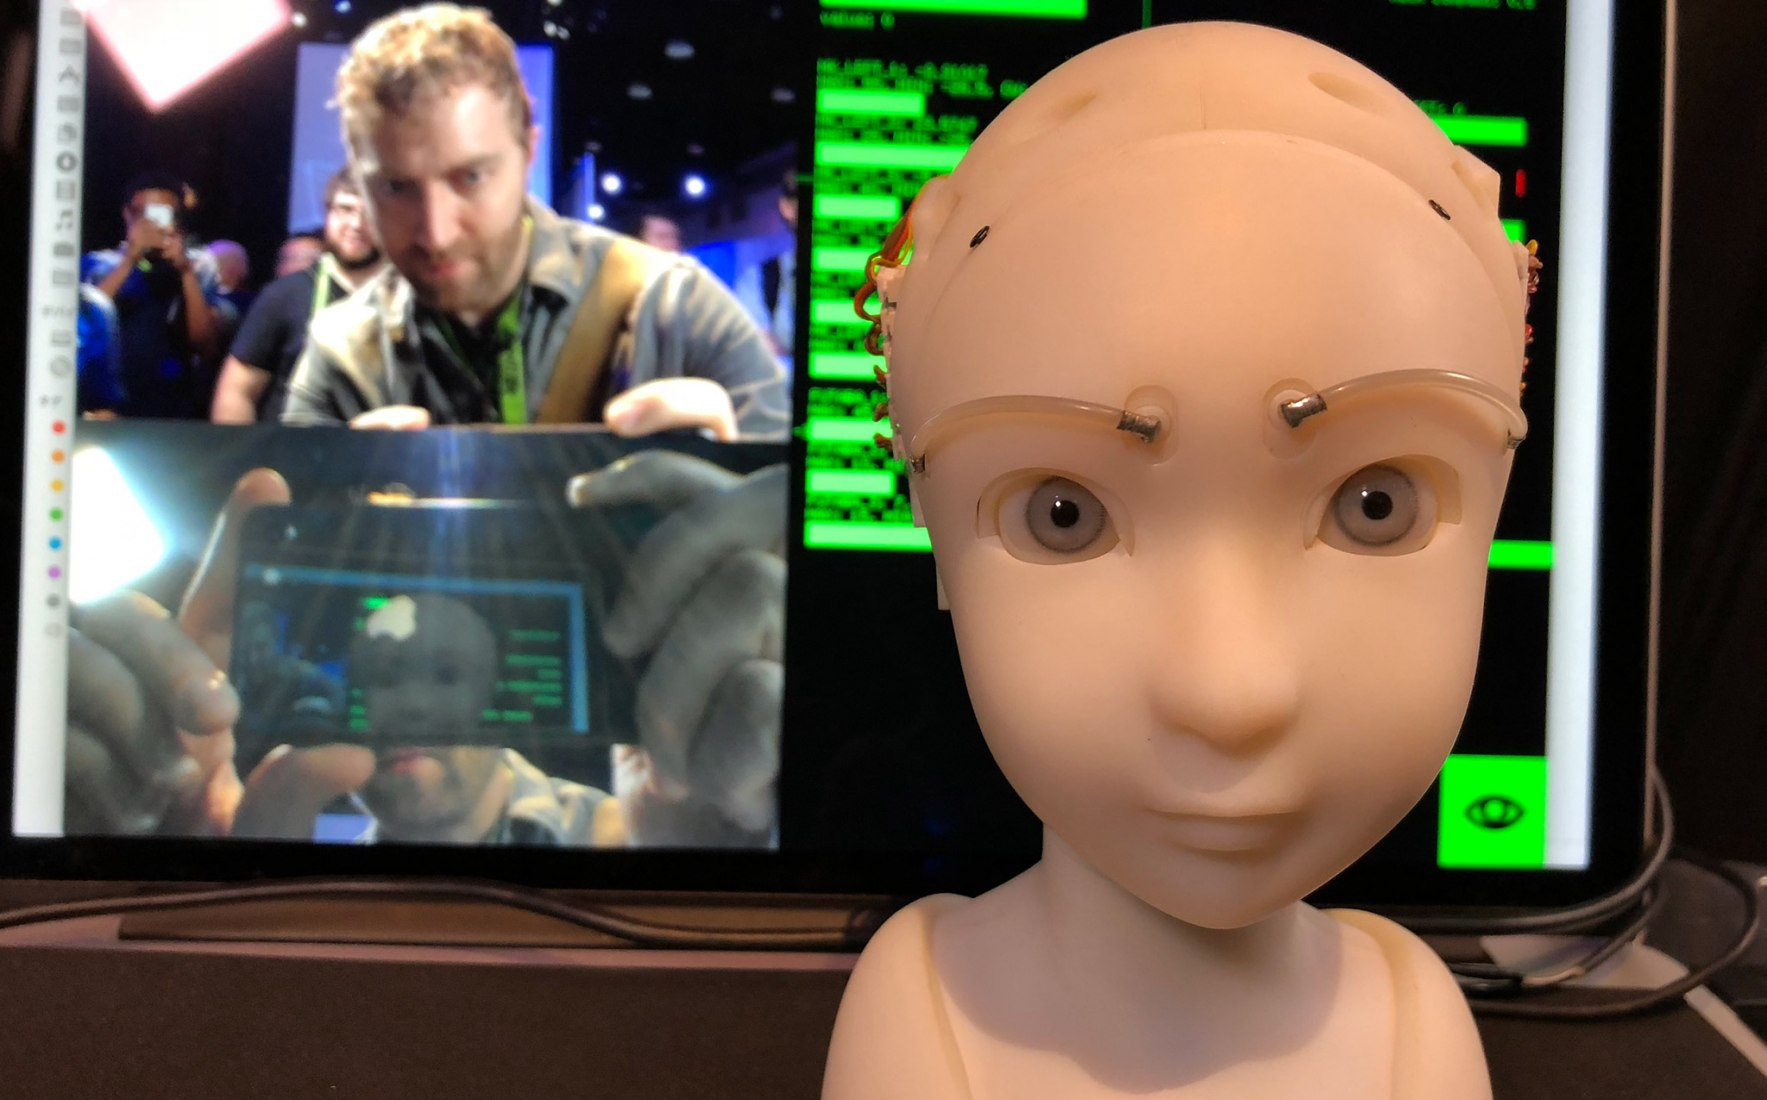 SEER: Simulative Emotional Expression Robot by Takayuki Todo